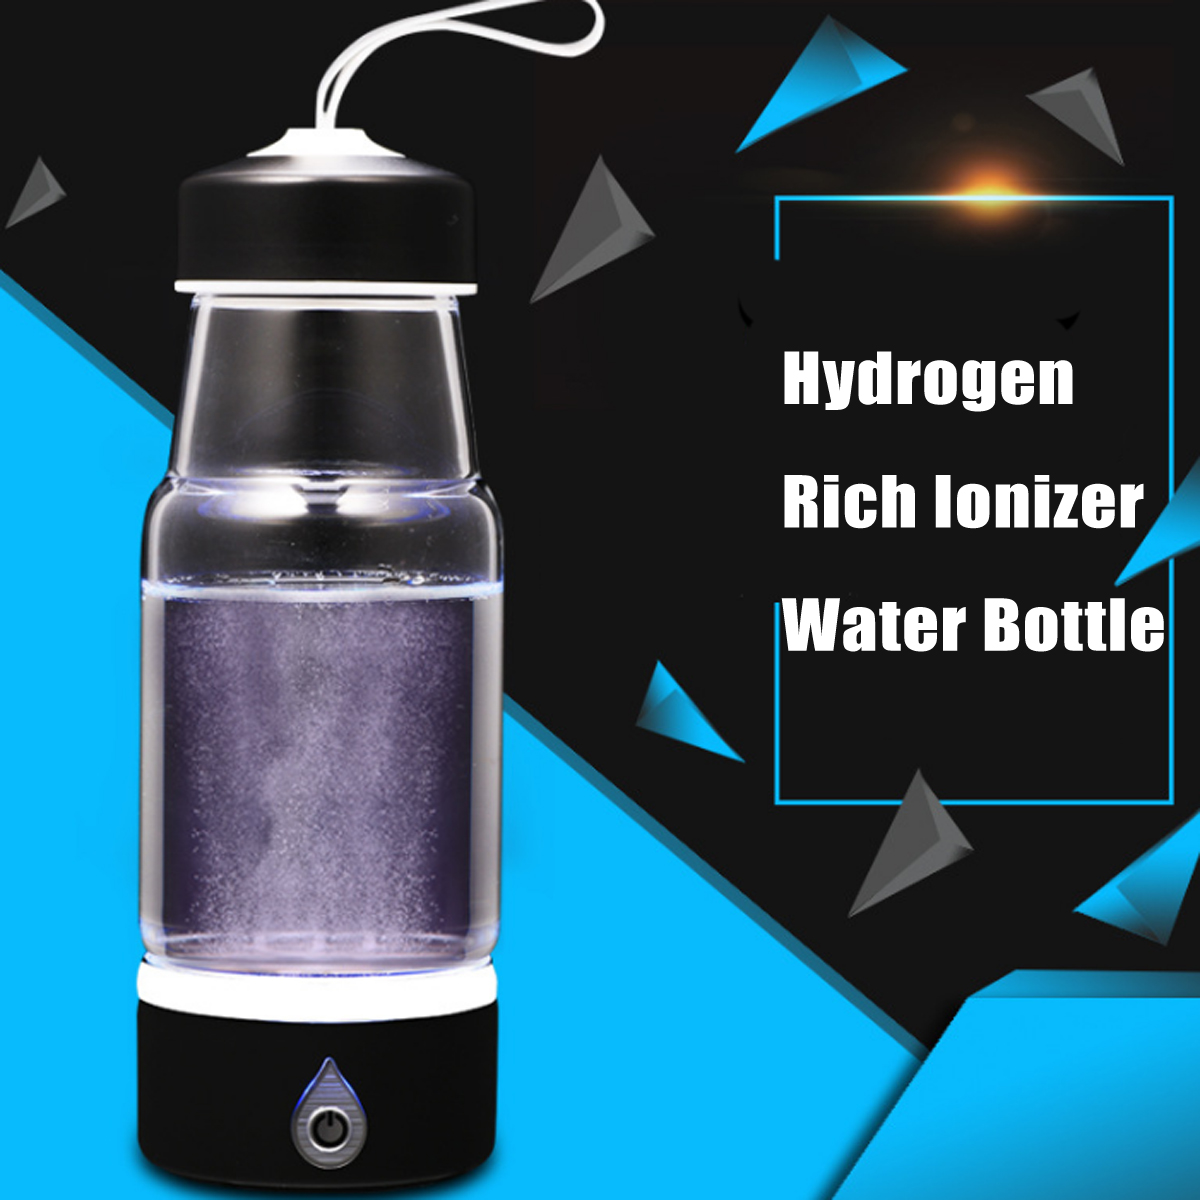 380ml USB Rechargeable Hydrogen Water Generator Intelligent Hydrogen Rich Water Bottles Alkaline Water Maker Portable Purifier ac110 240v 500ml intelligent electric hydrogen rich water ionizer maker generator